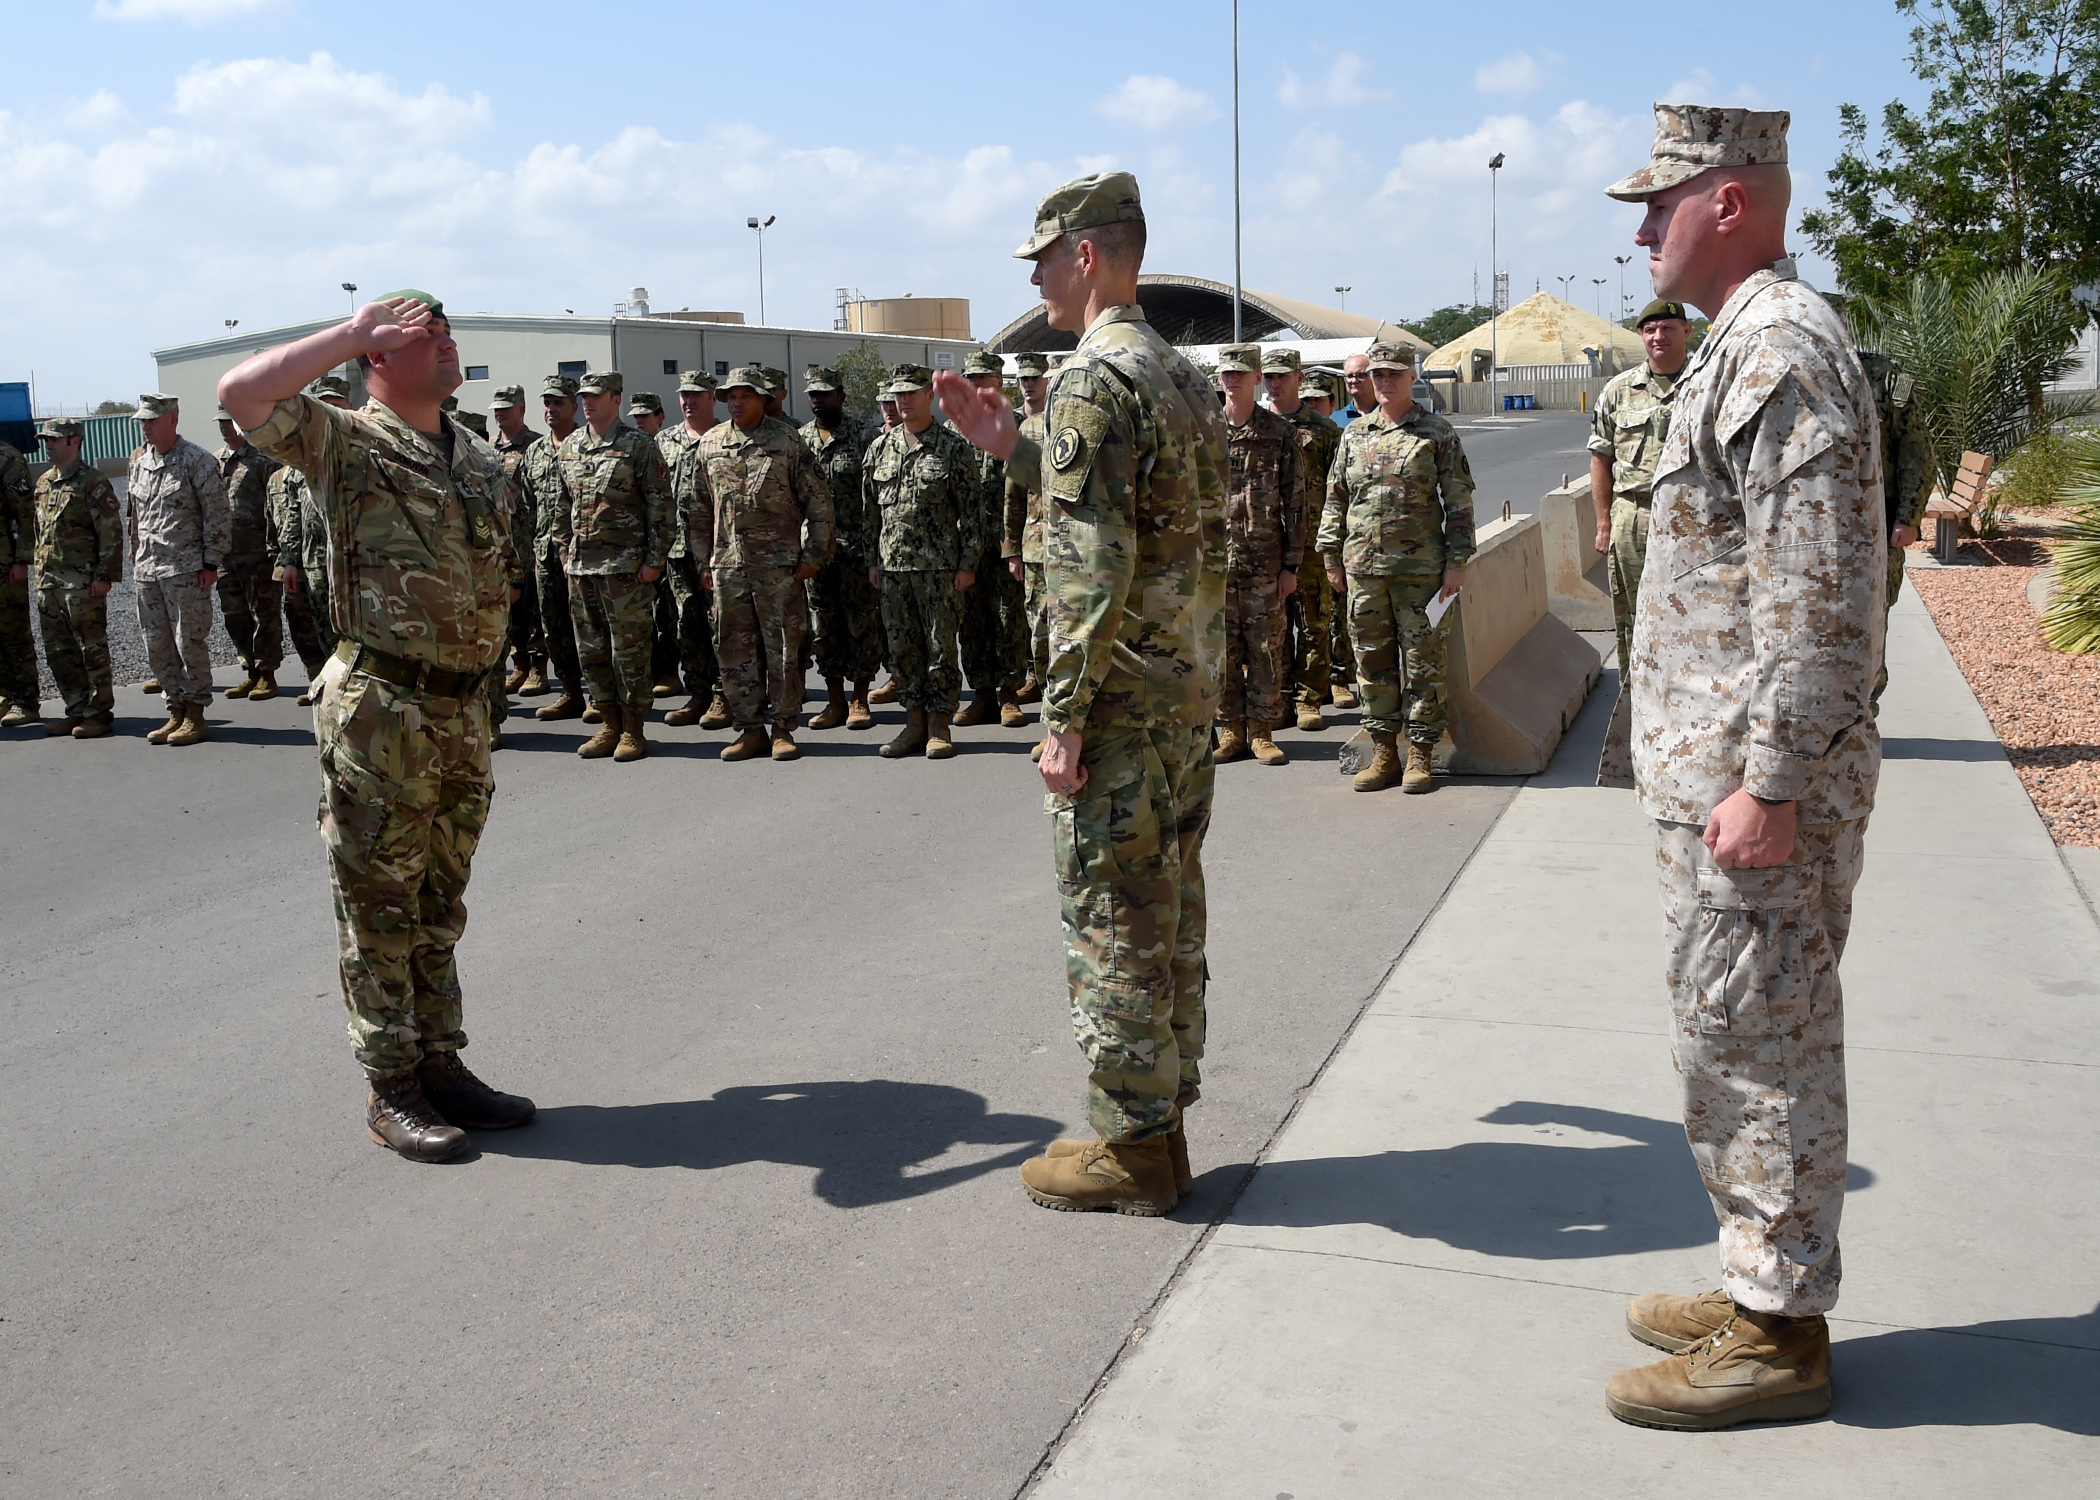 U.S. Army Brig. Gen. William L. Zana (center), deputy commander, Combined Joint Task Force-Horn of Africa (CJTF-HOA), returns the salute of British Staff Sgt. David Donovan (left), assigned to CJTF-HOA during a ceremony honoring U.S. President George H.W. Bush at Camp Lemonnier, Djibouti, Dec. 5, 2018. (U.S. Navy Photo by Mass Communication Specialist 1st Class Nick Scott/released)